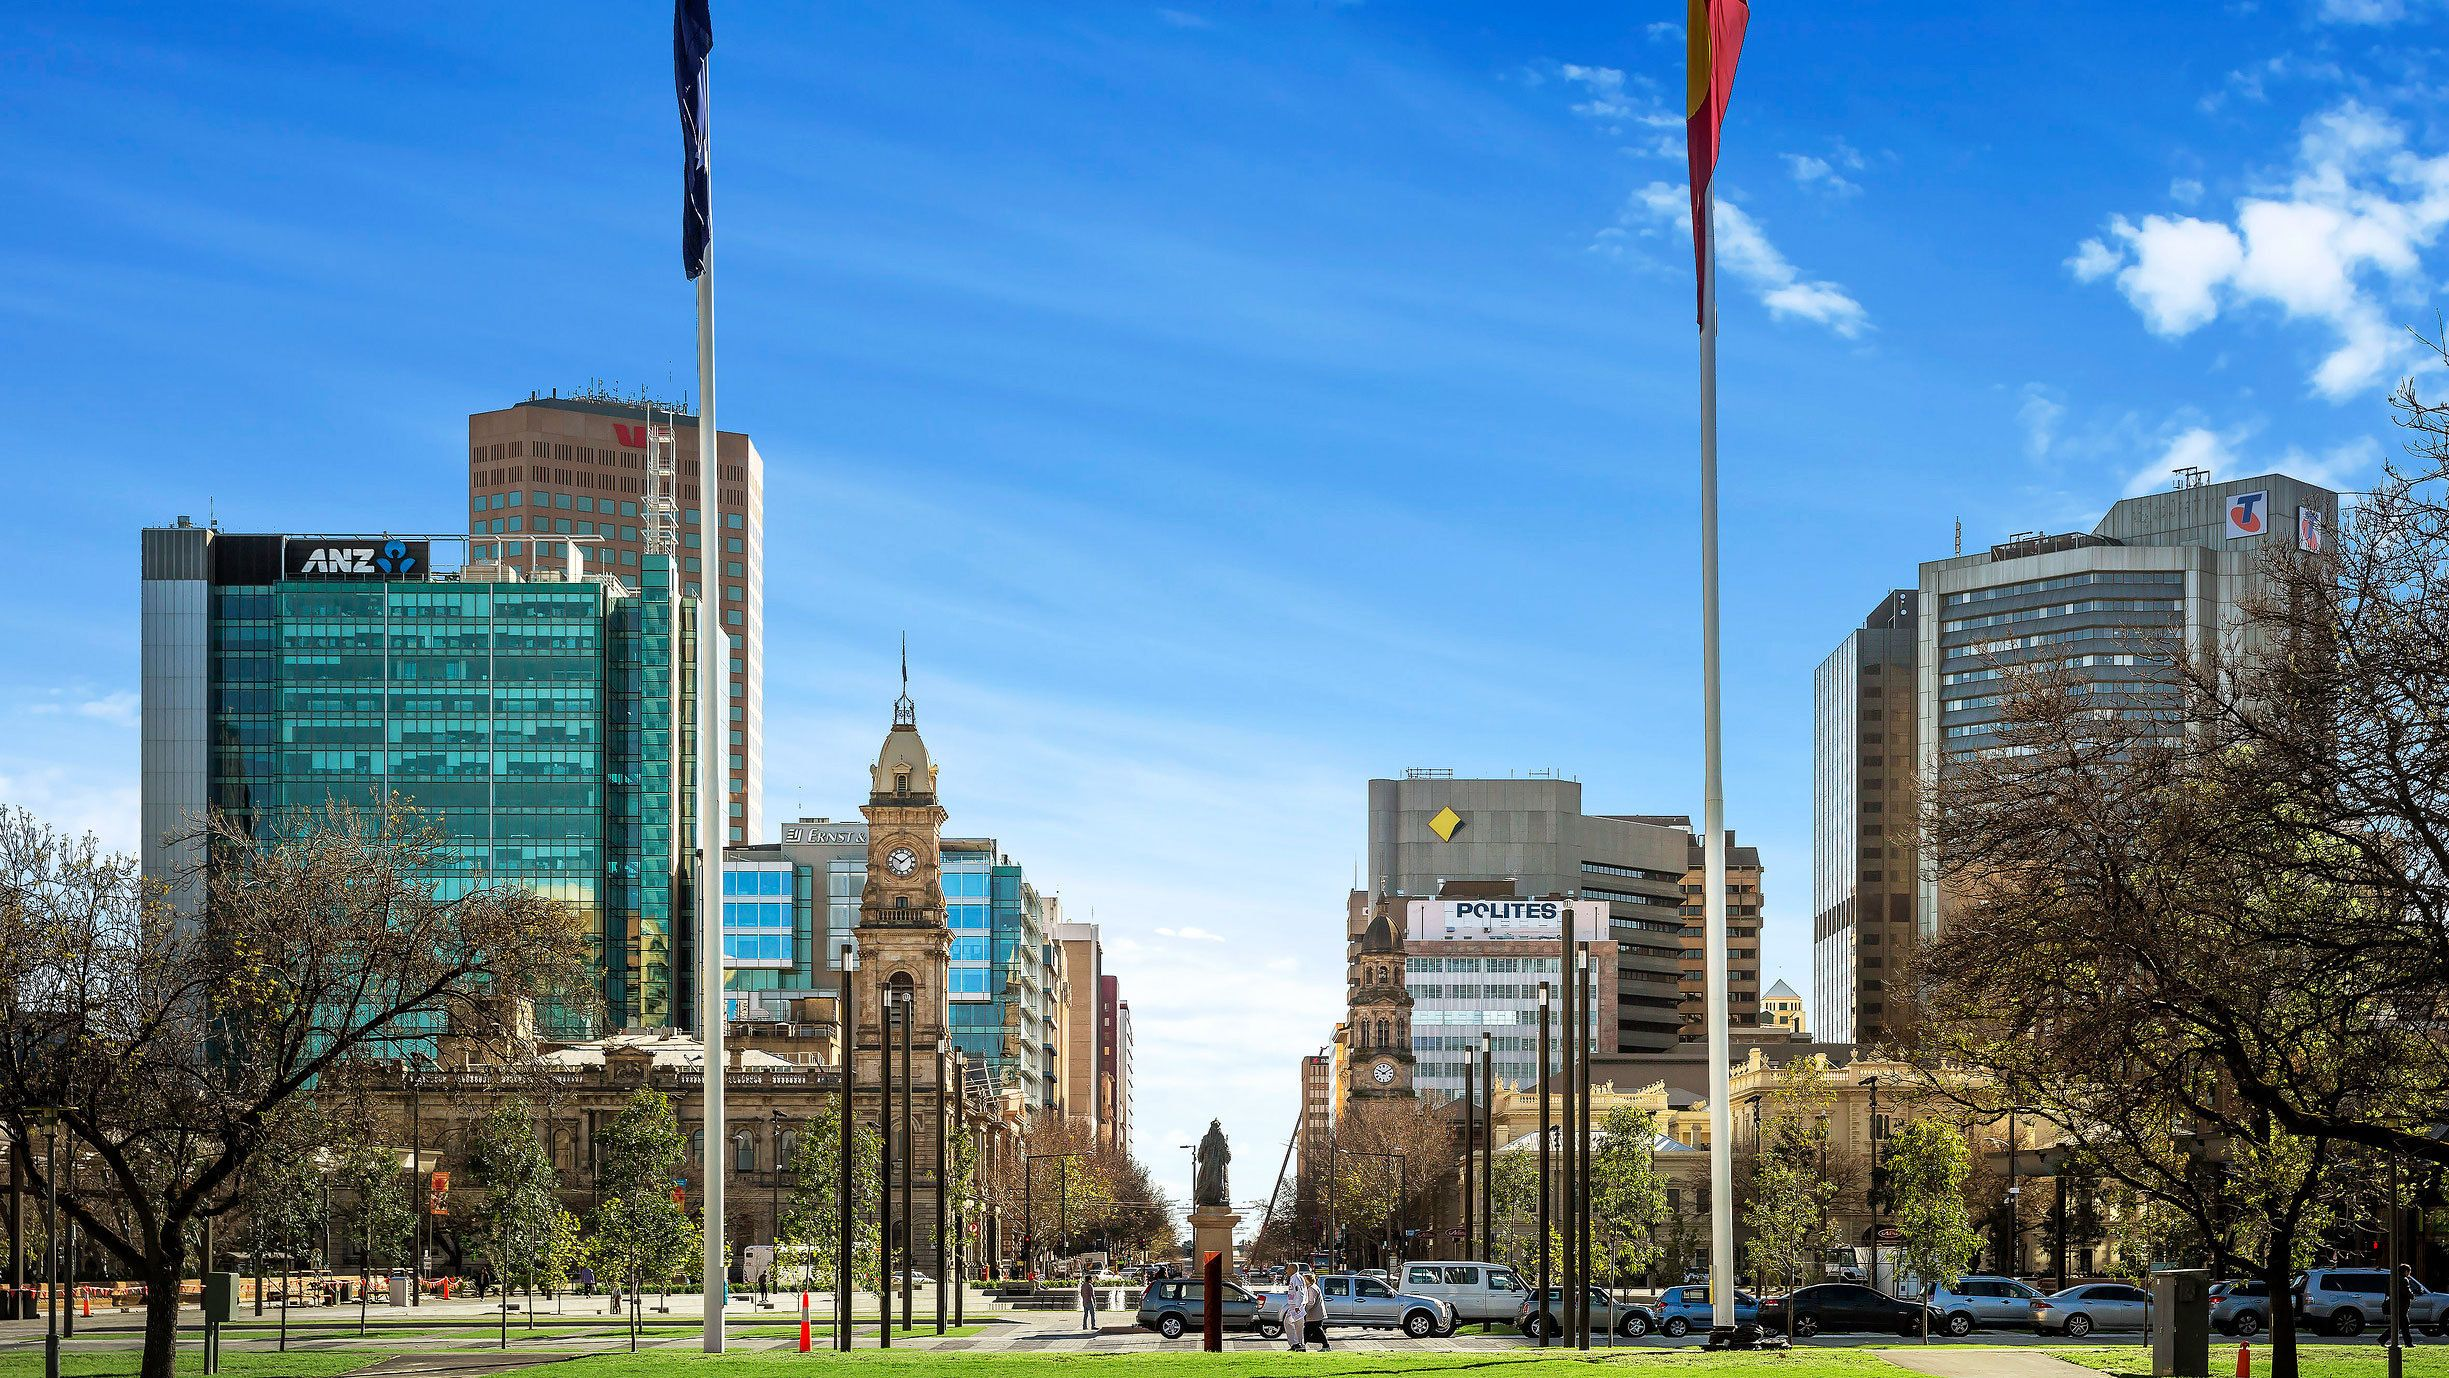 The city of Adelaide